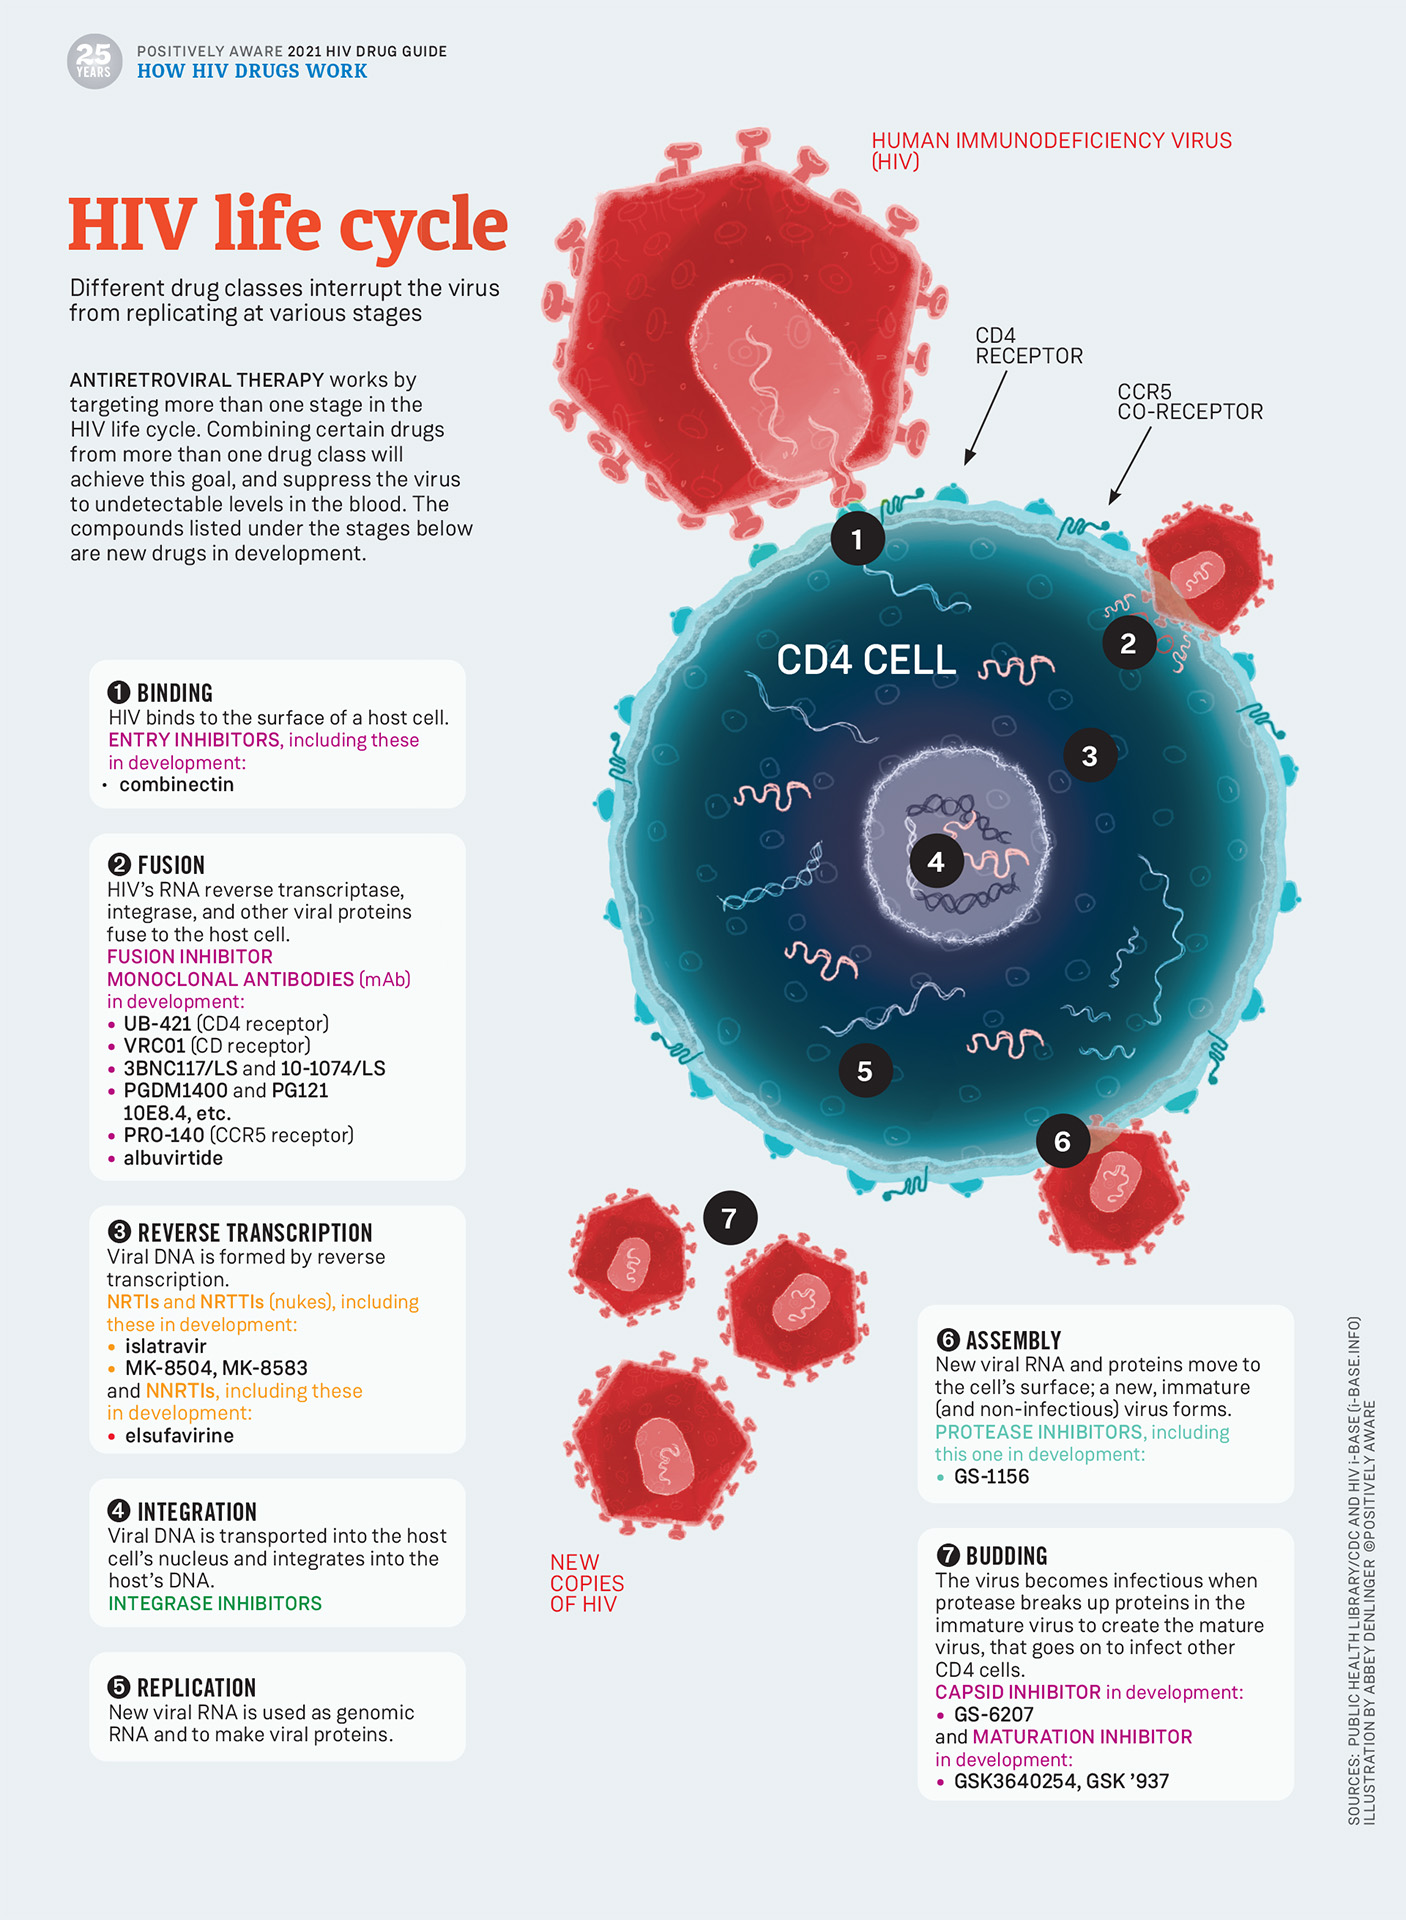 Positively Aware: HIV Life Cycle 2021